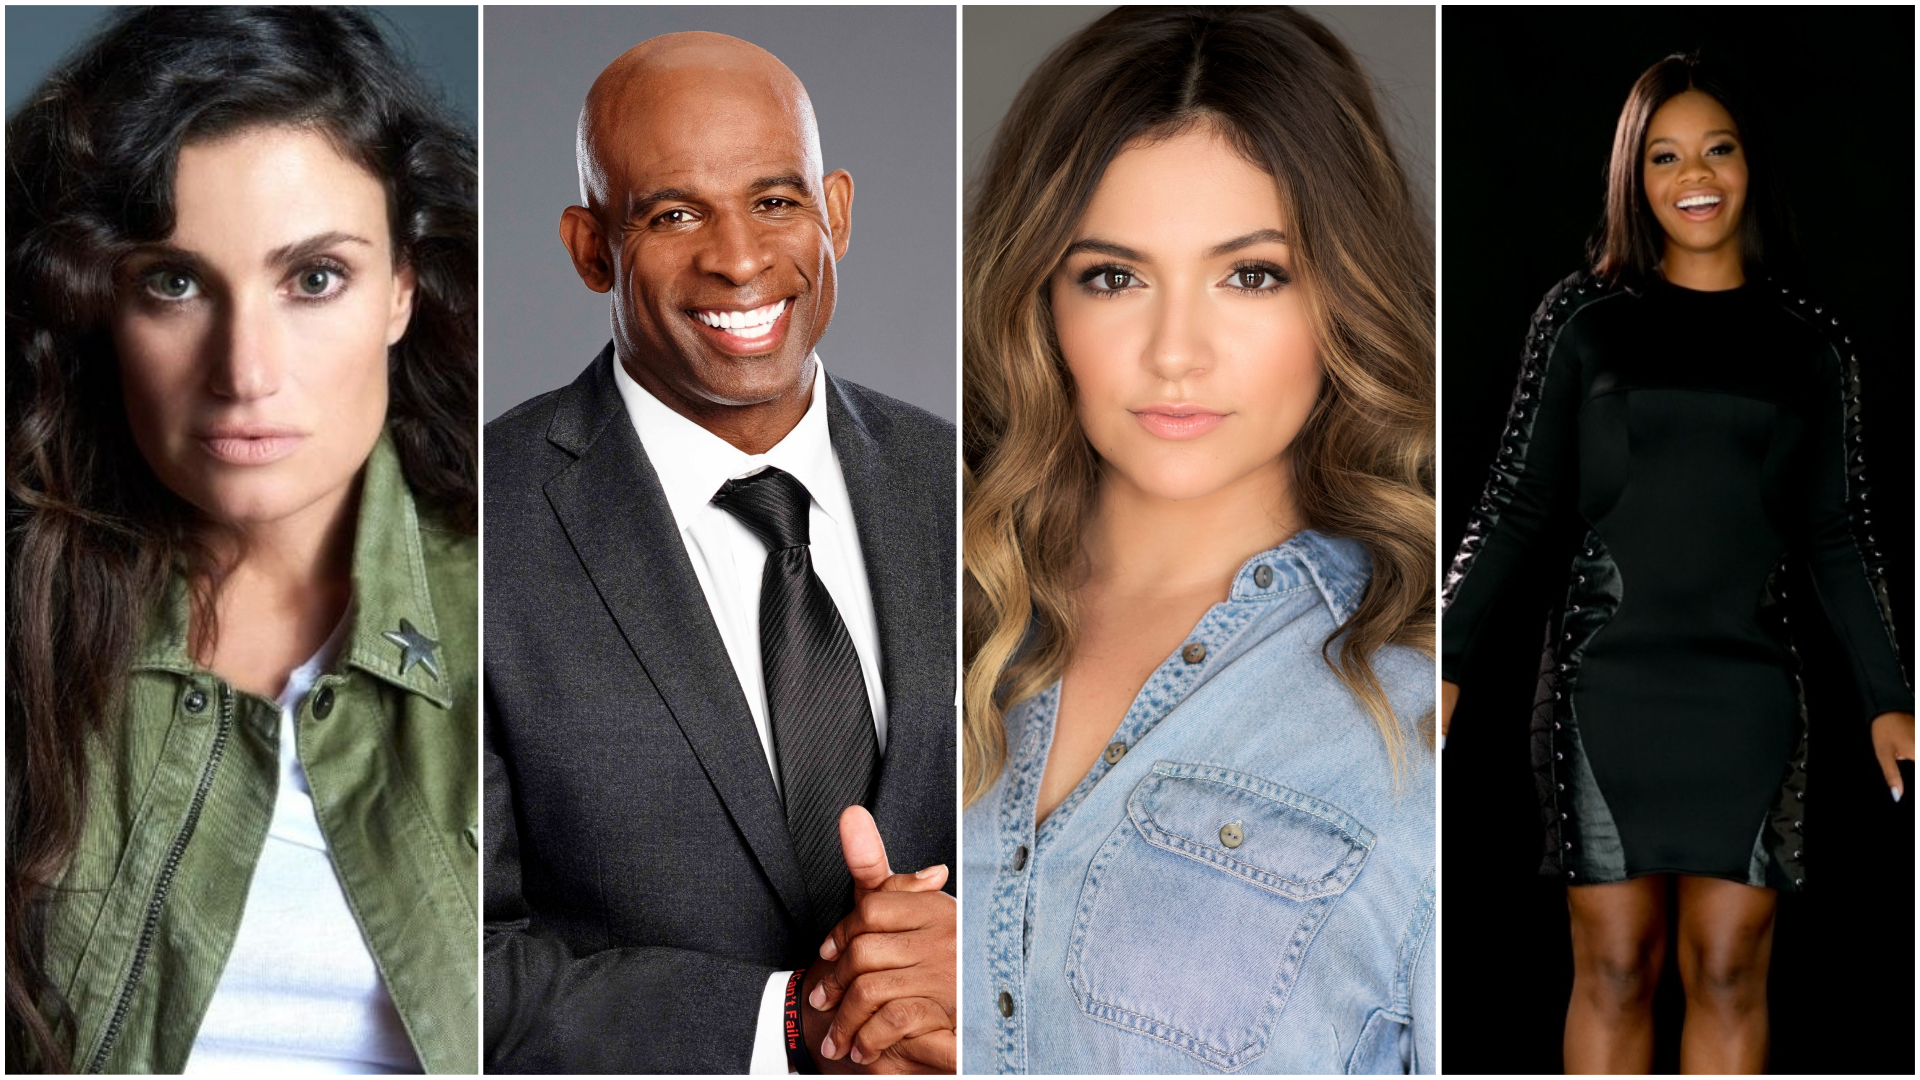 These celebs are about to make dreams come true!